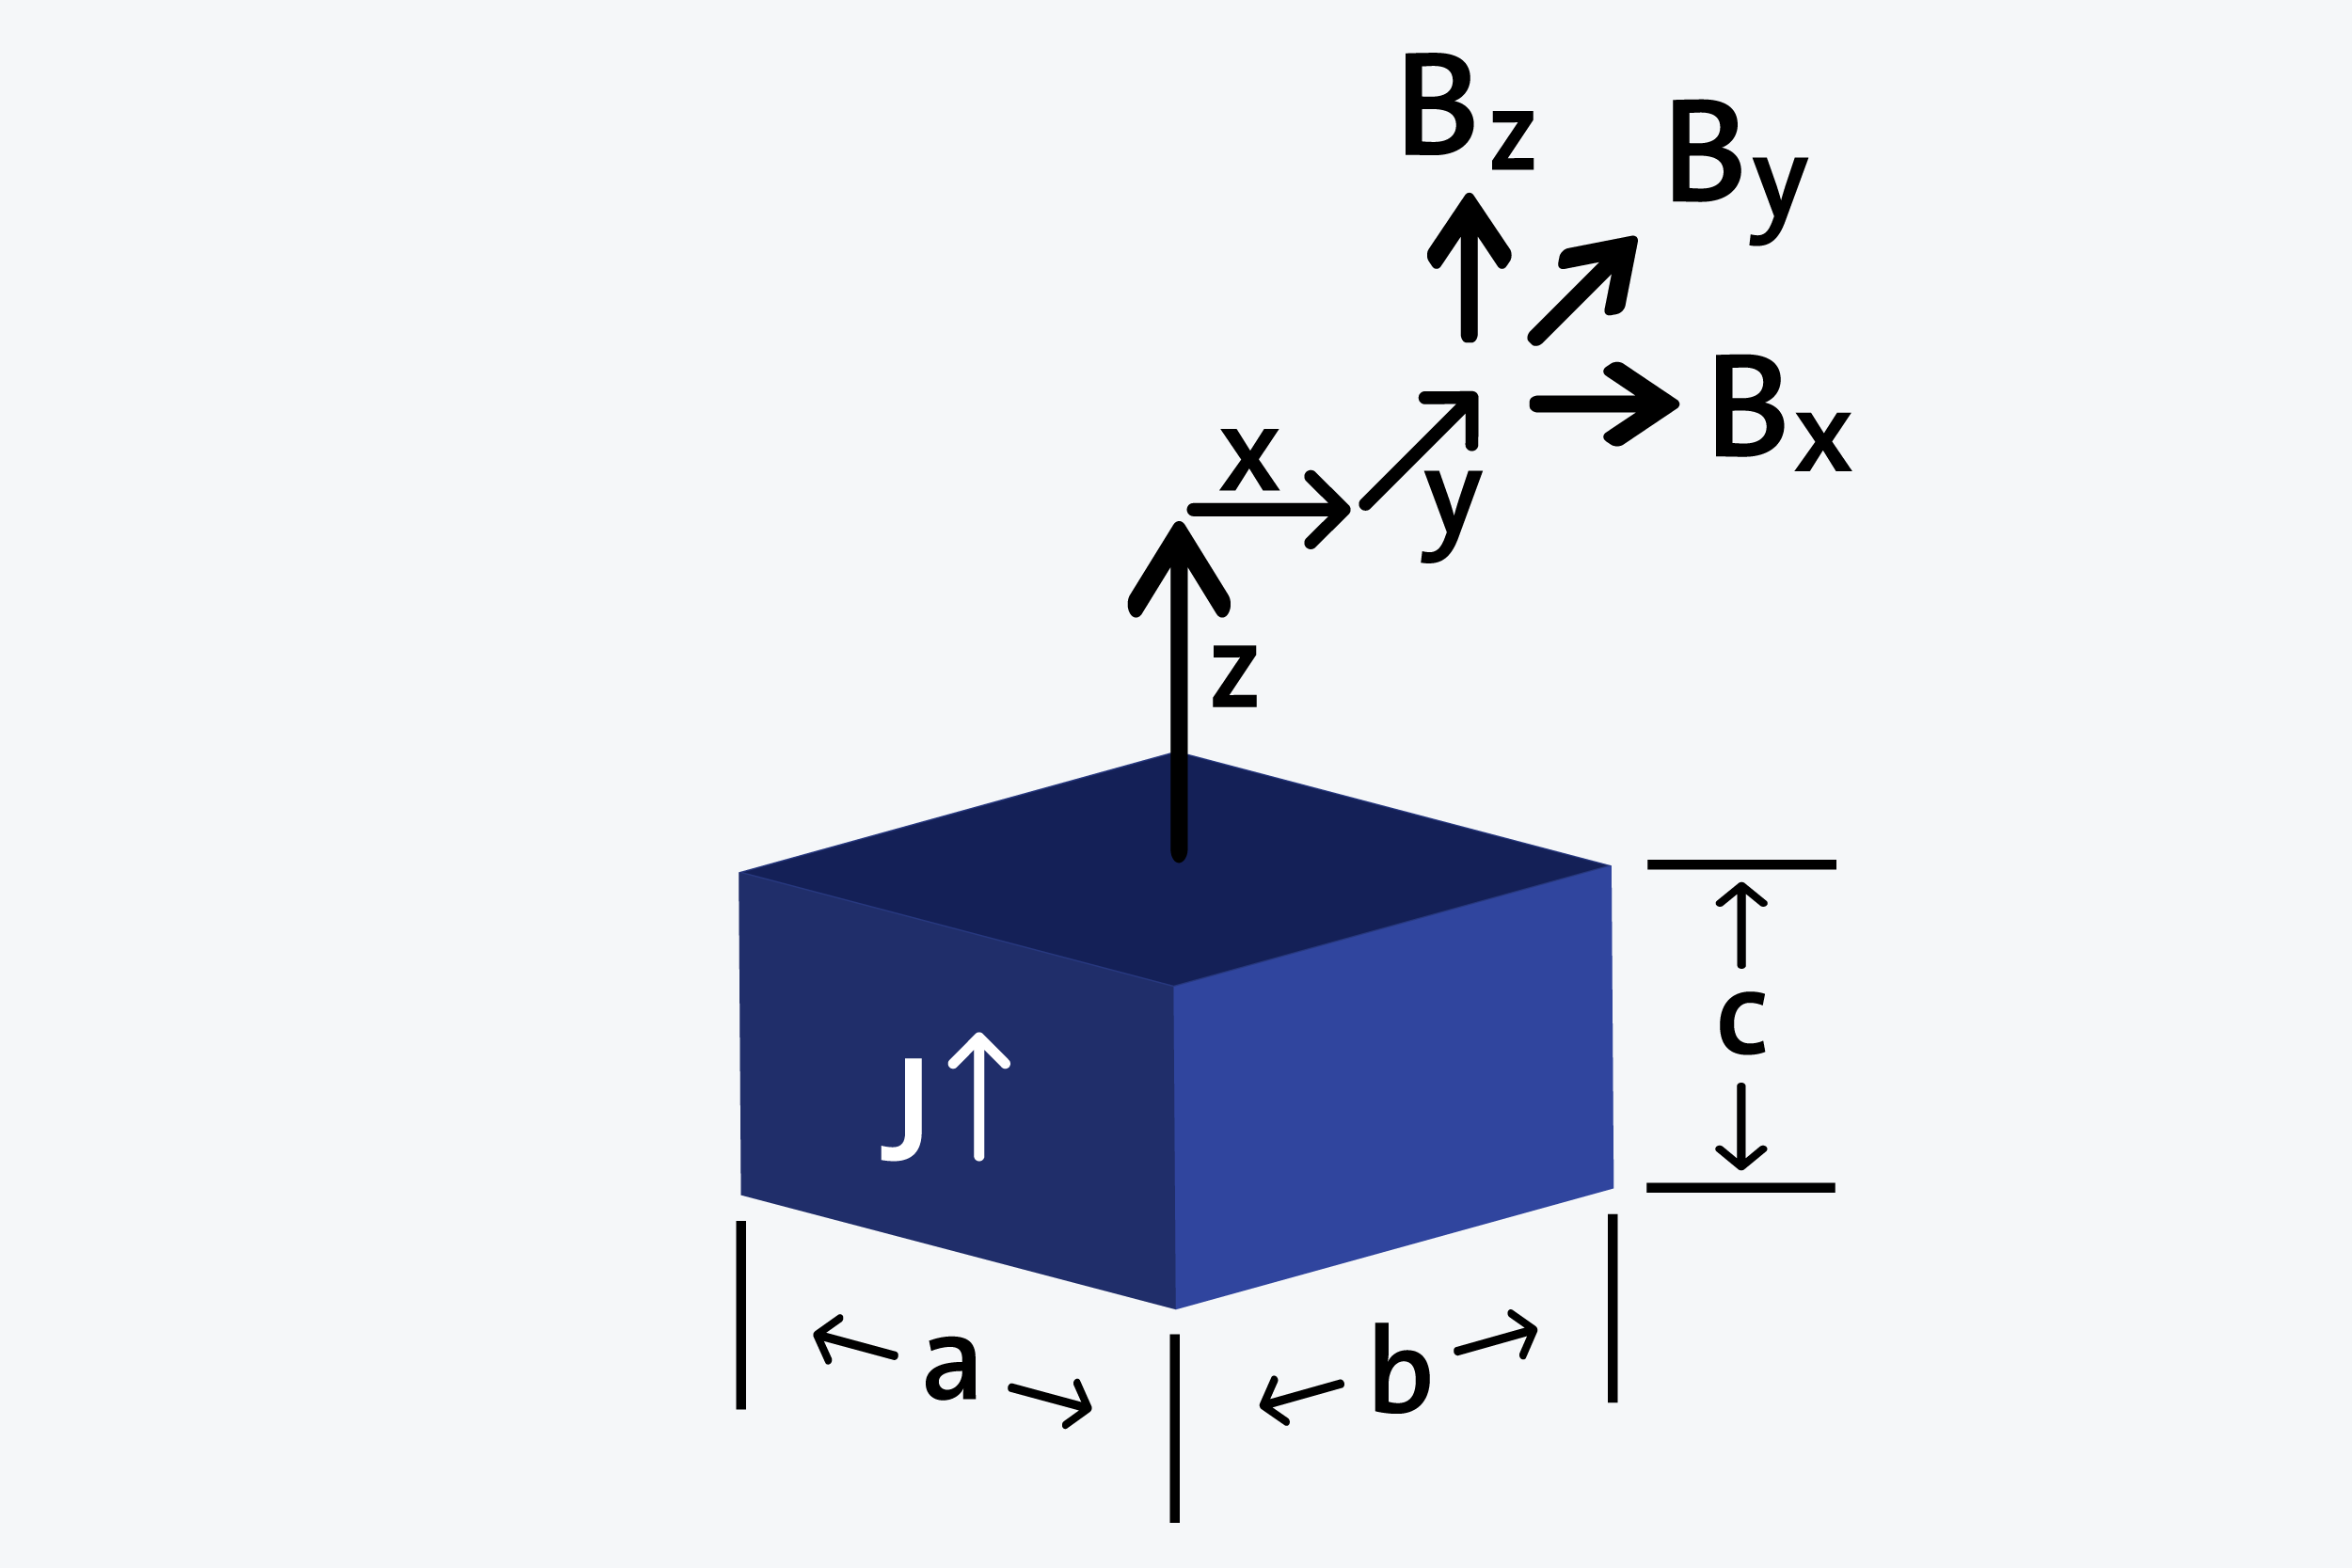 Block - Axially magnetized